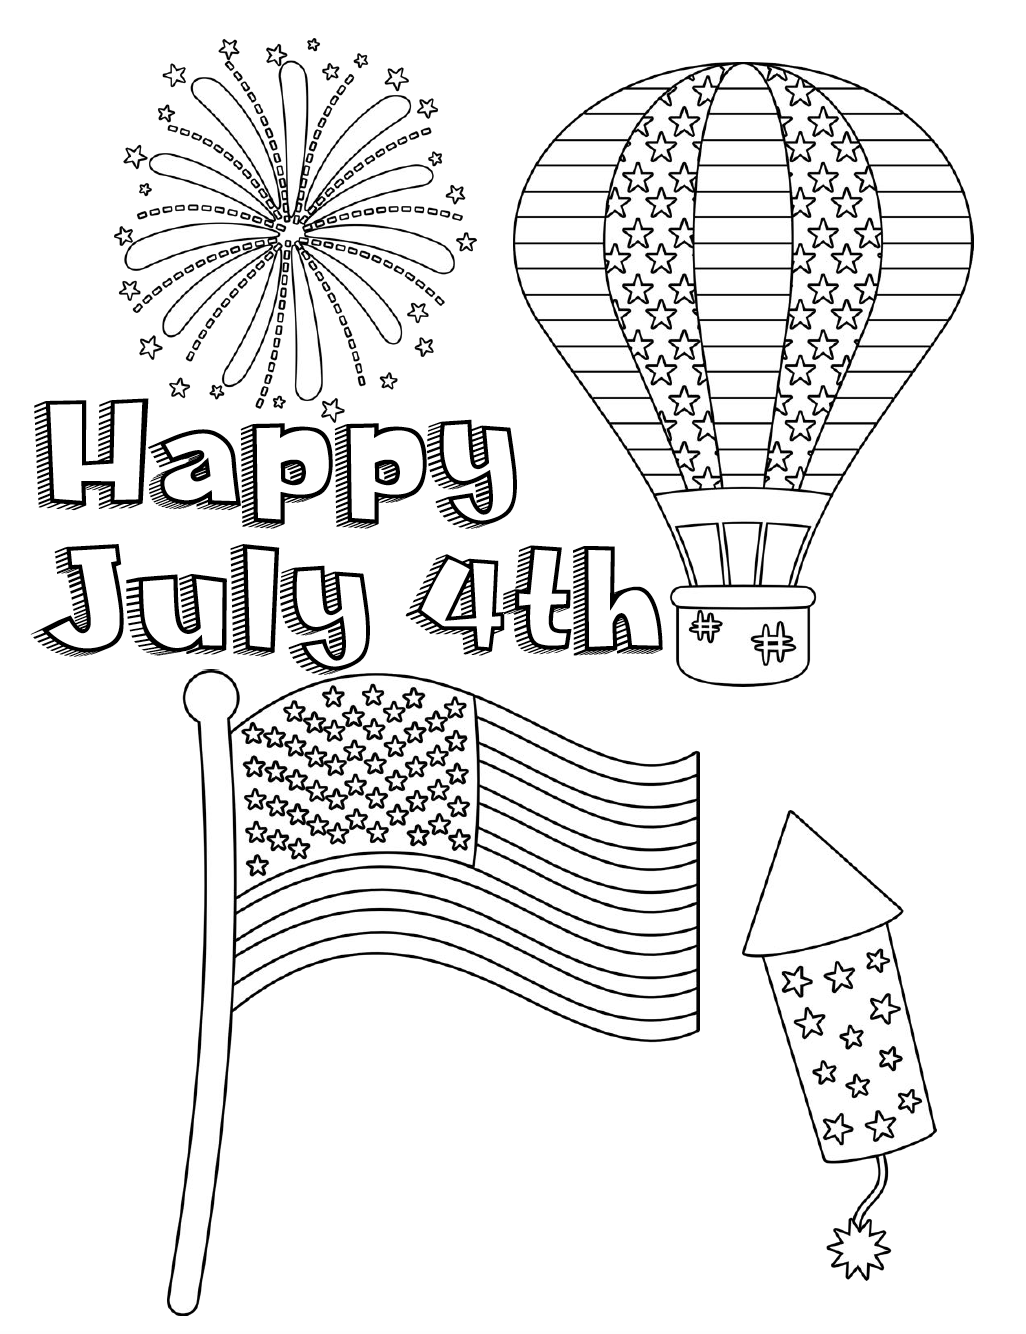 photograph relating to Free Printable 4th of July Coloring Pages identify Free of charge Printable Fourth of July Coloring Web pages: 4 Programs